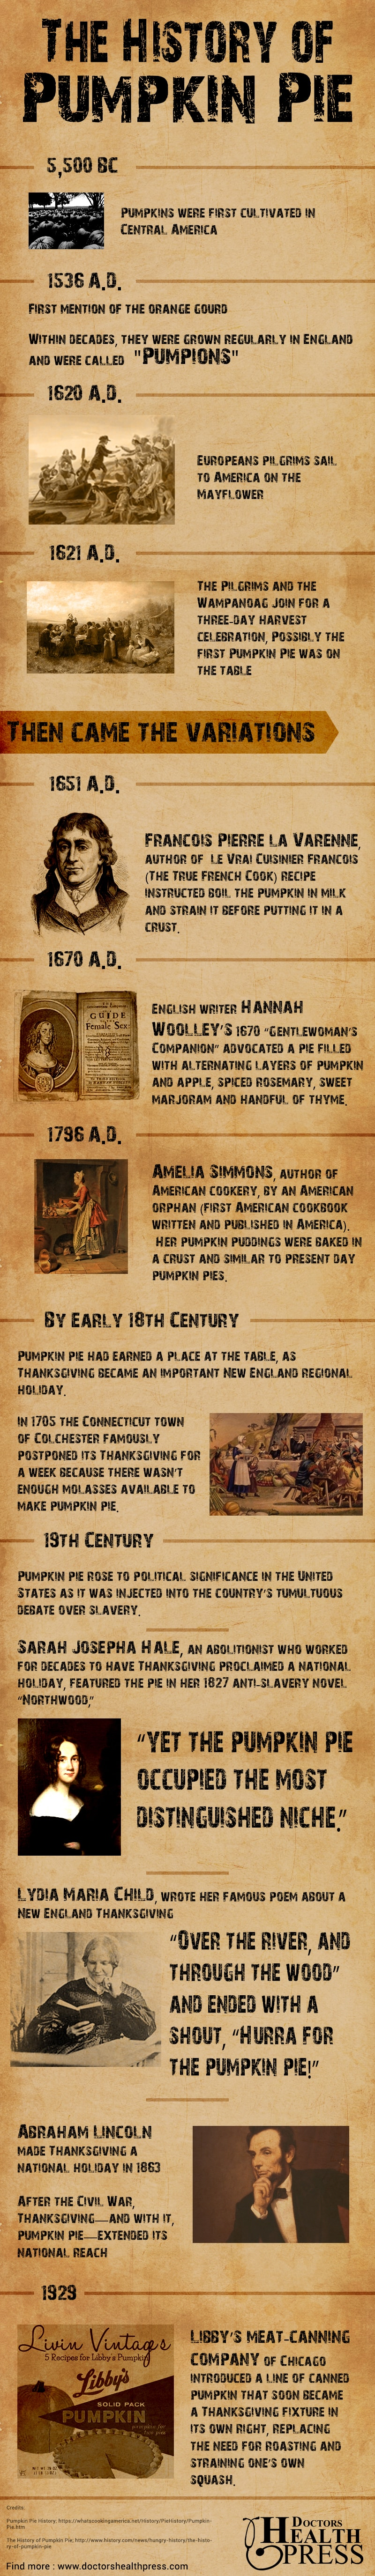 Pumpkin Pie history